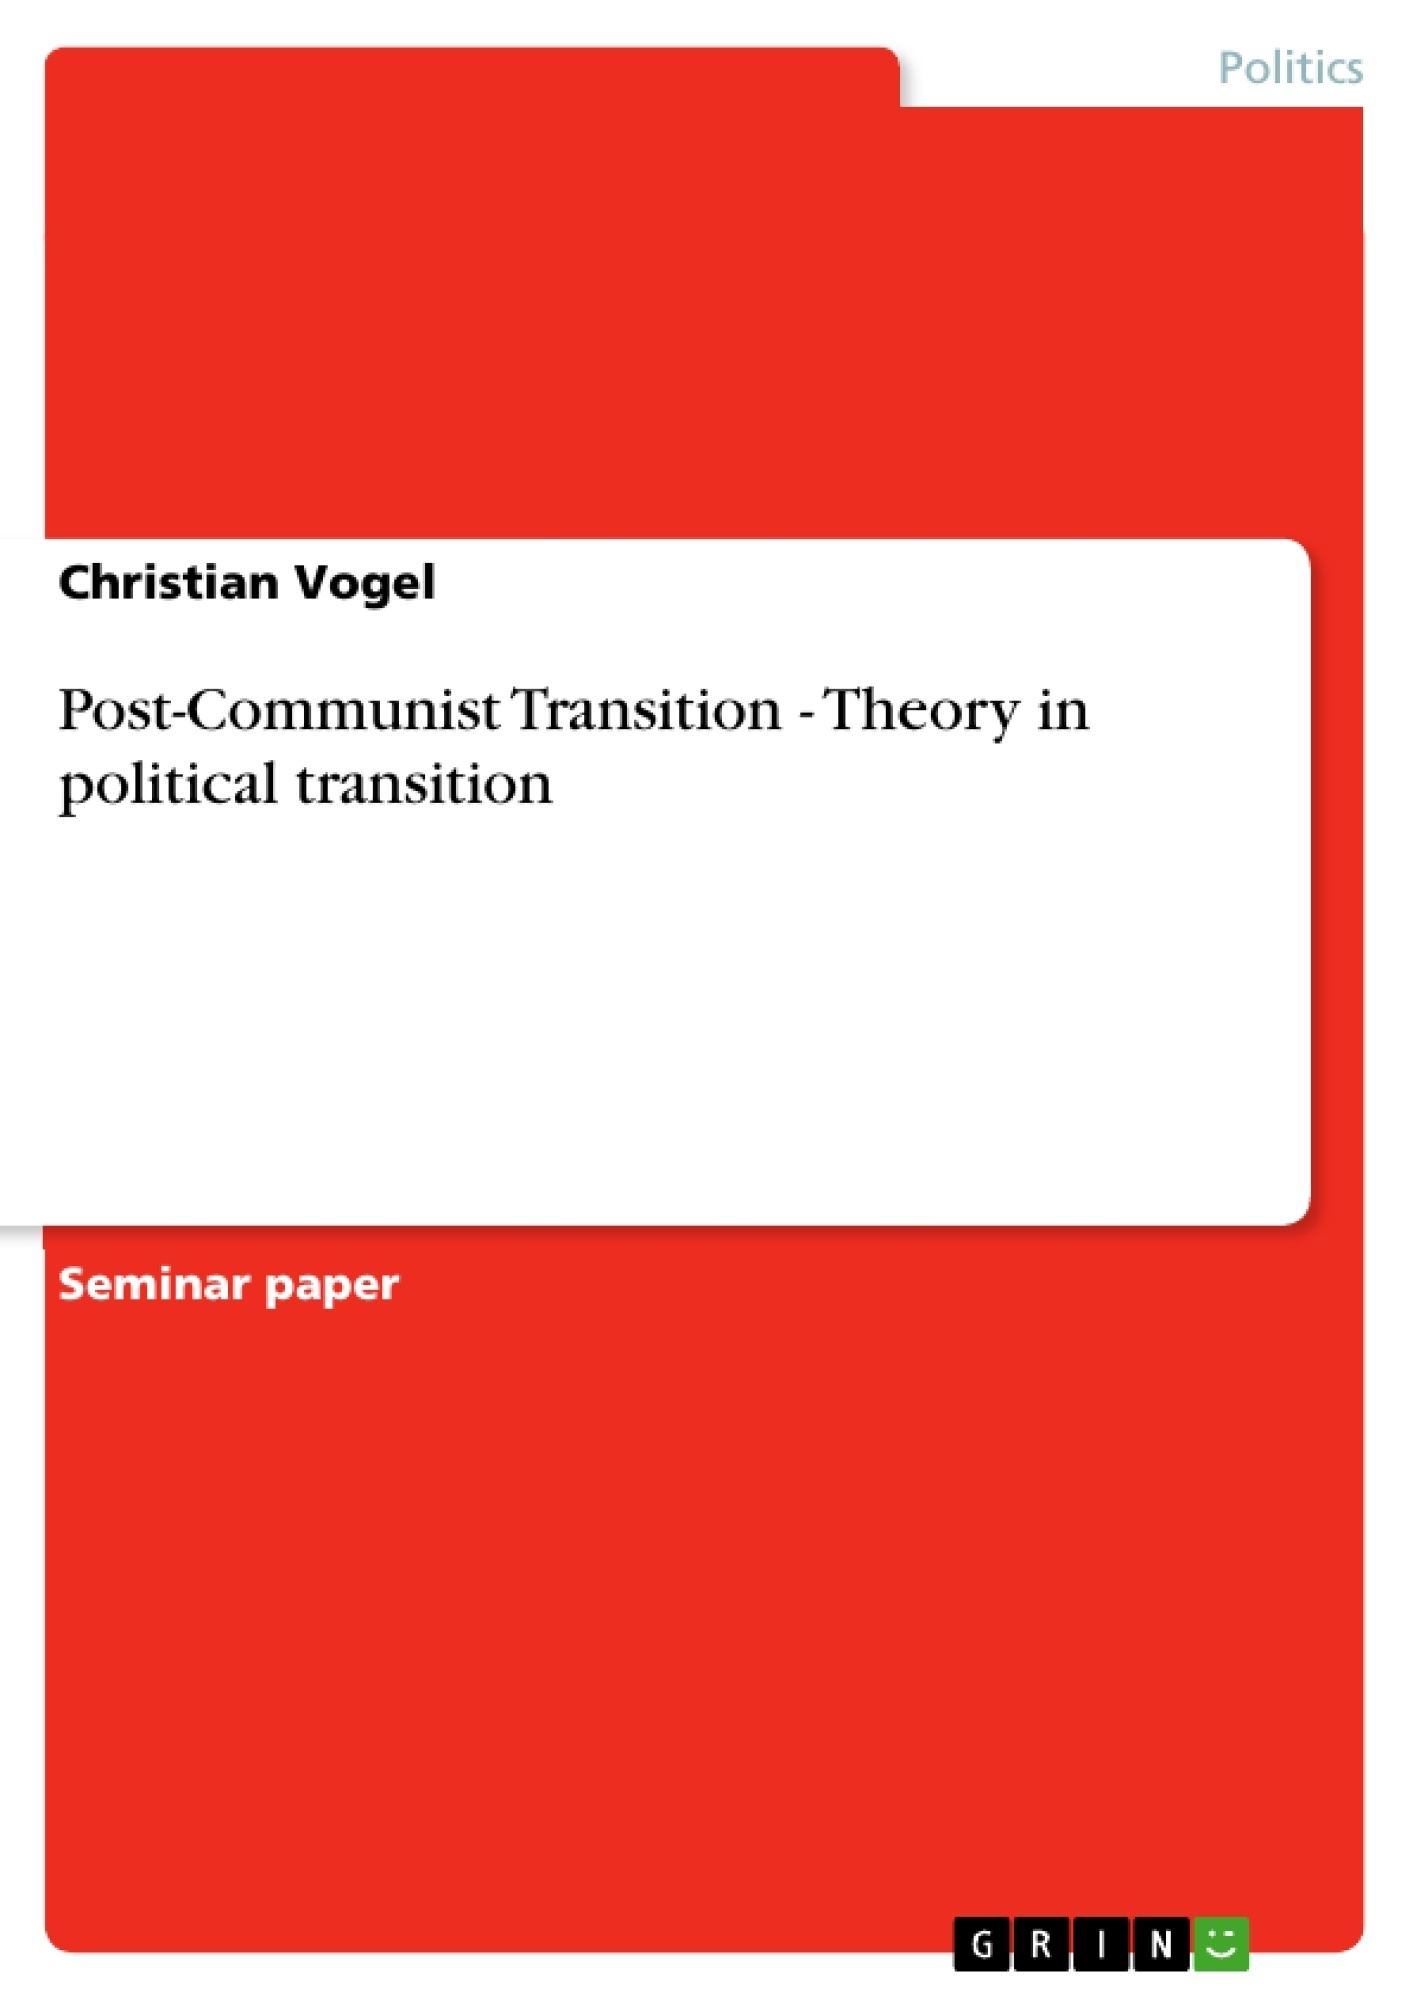 Title: Post-Communist Transition - Theory in political transition